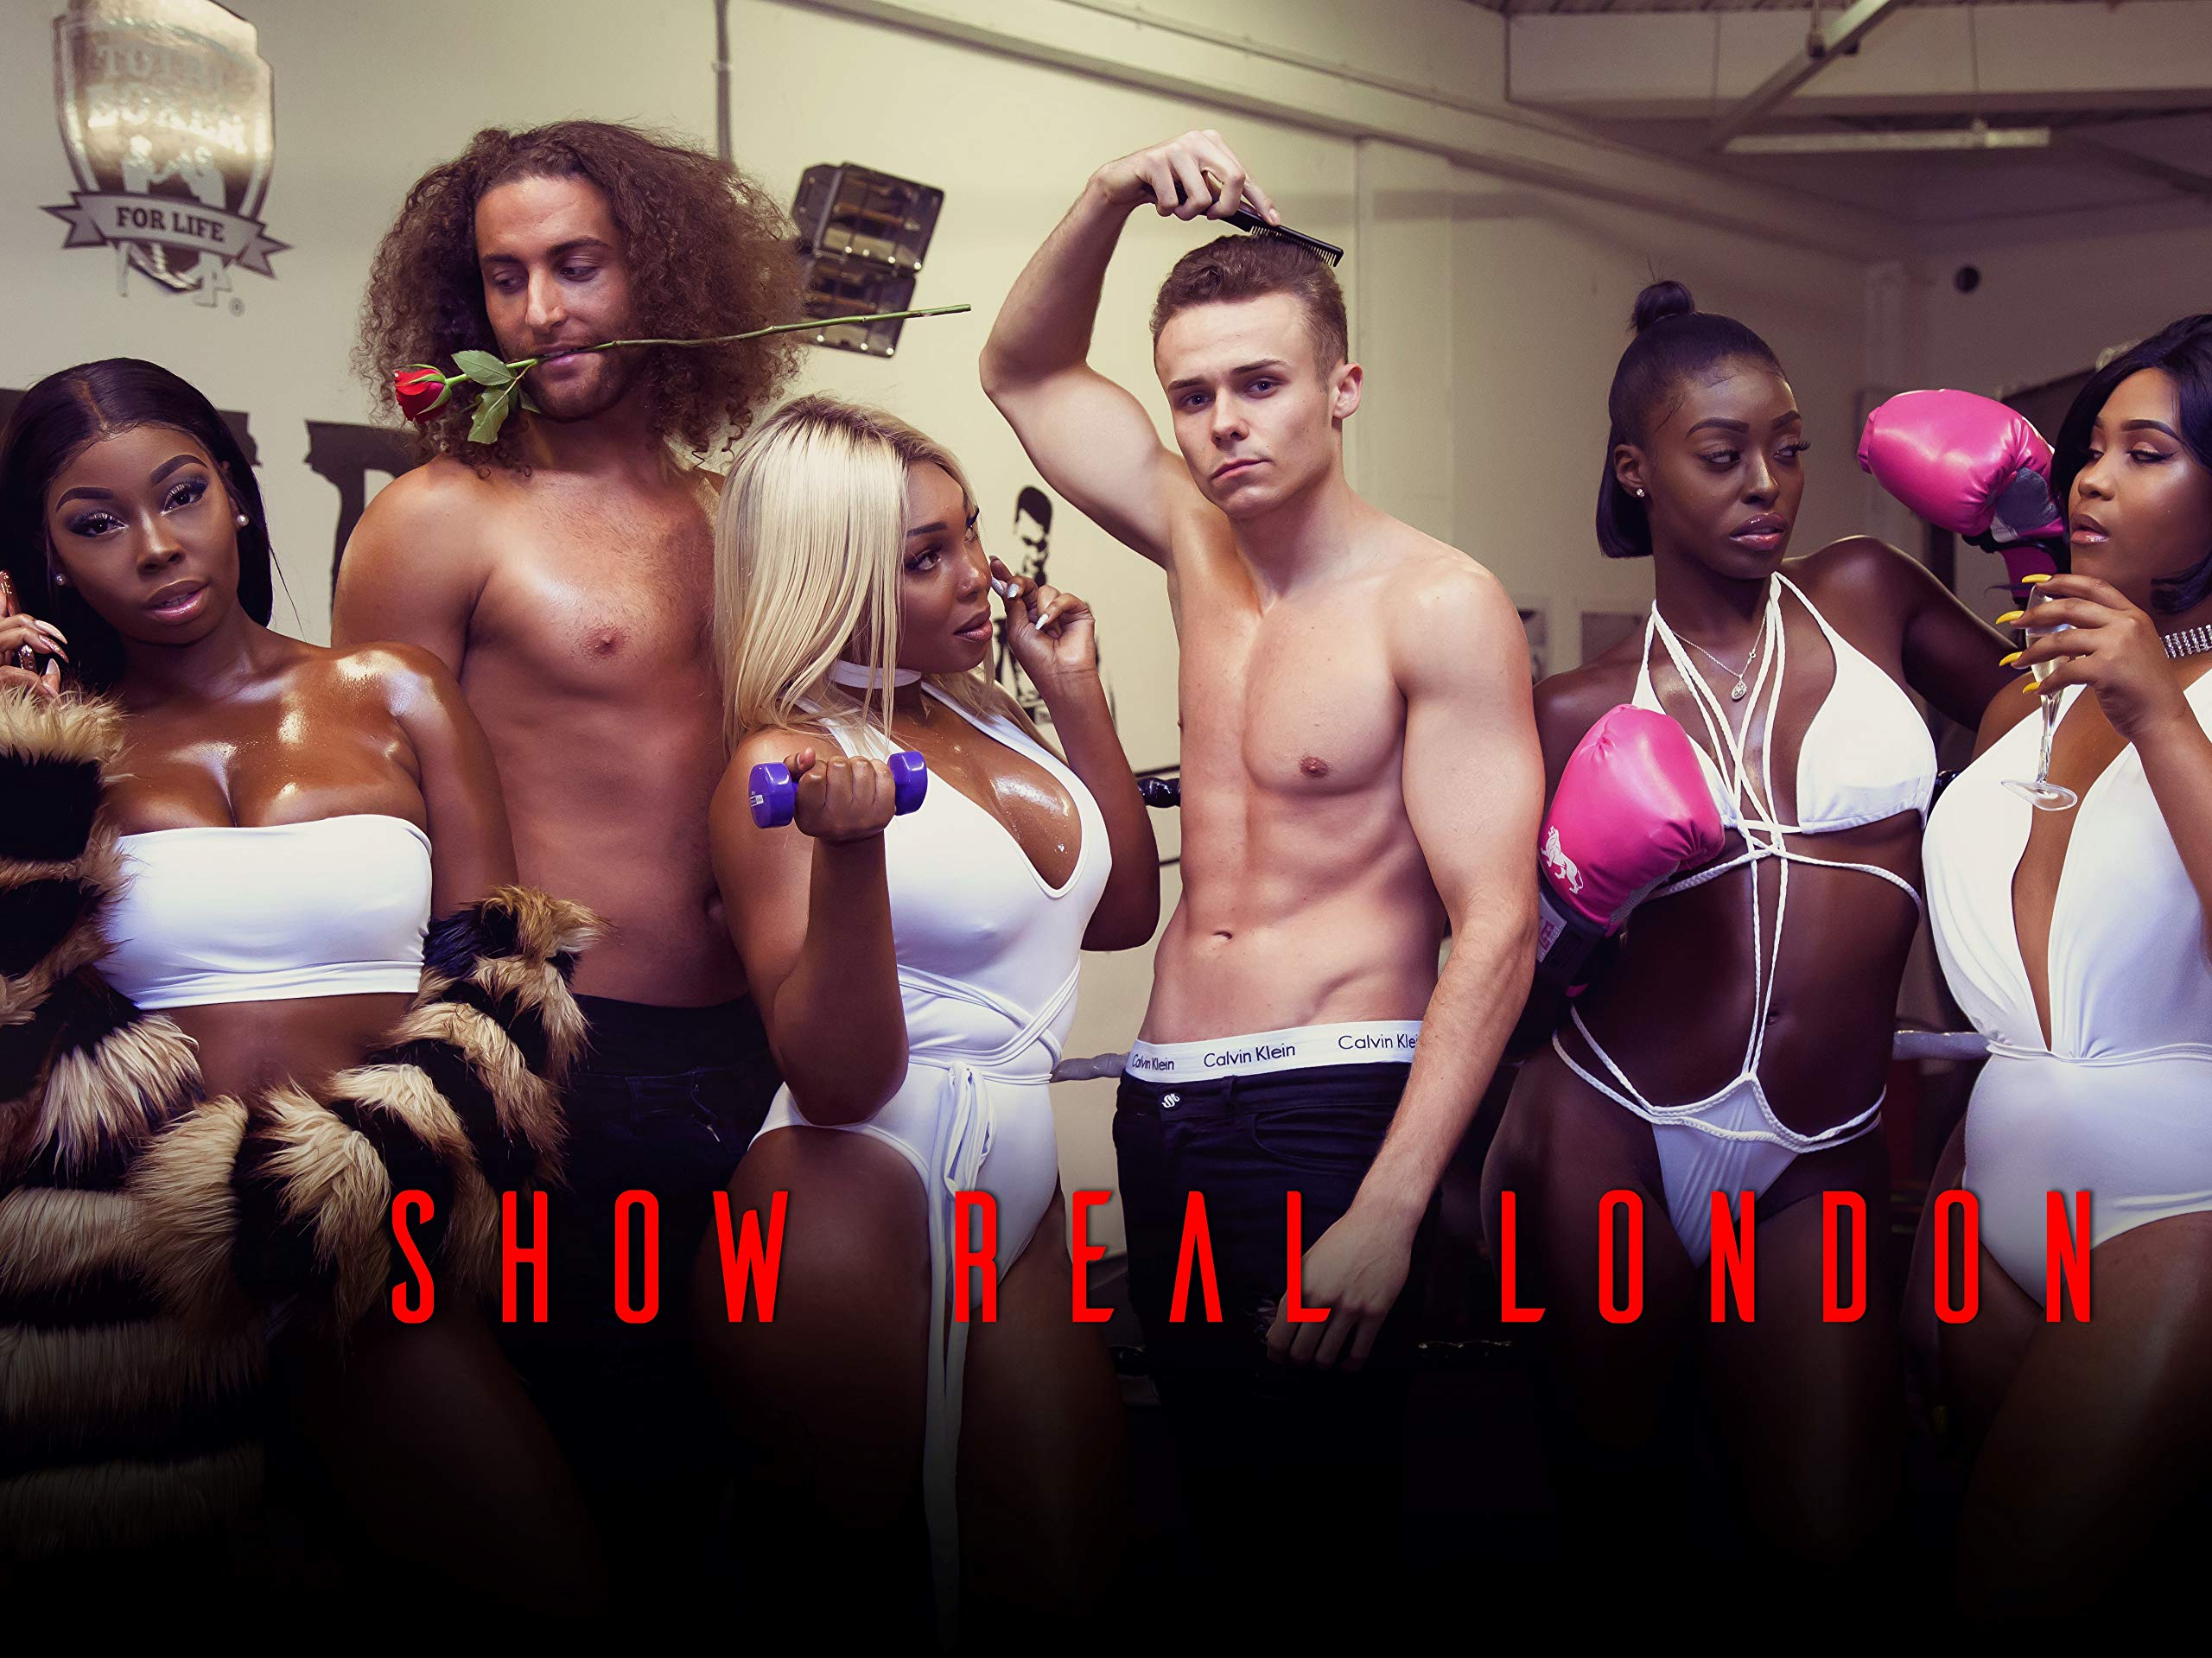 Show real London